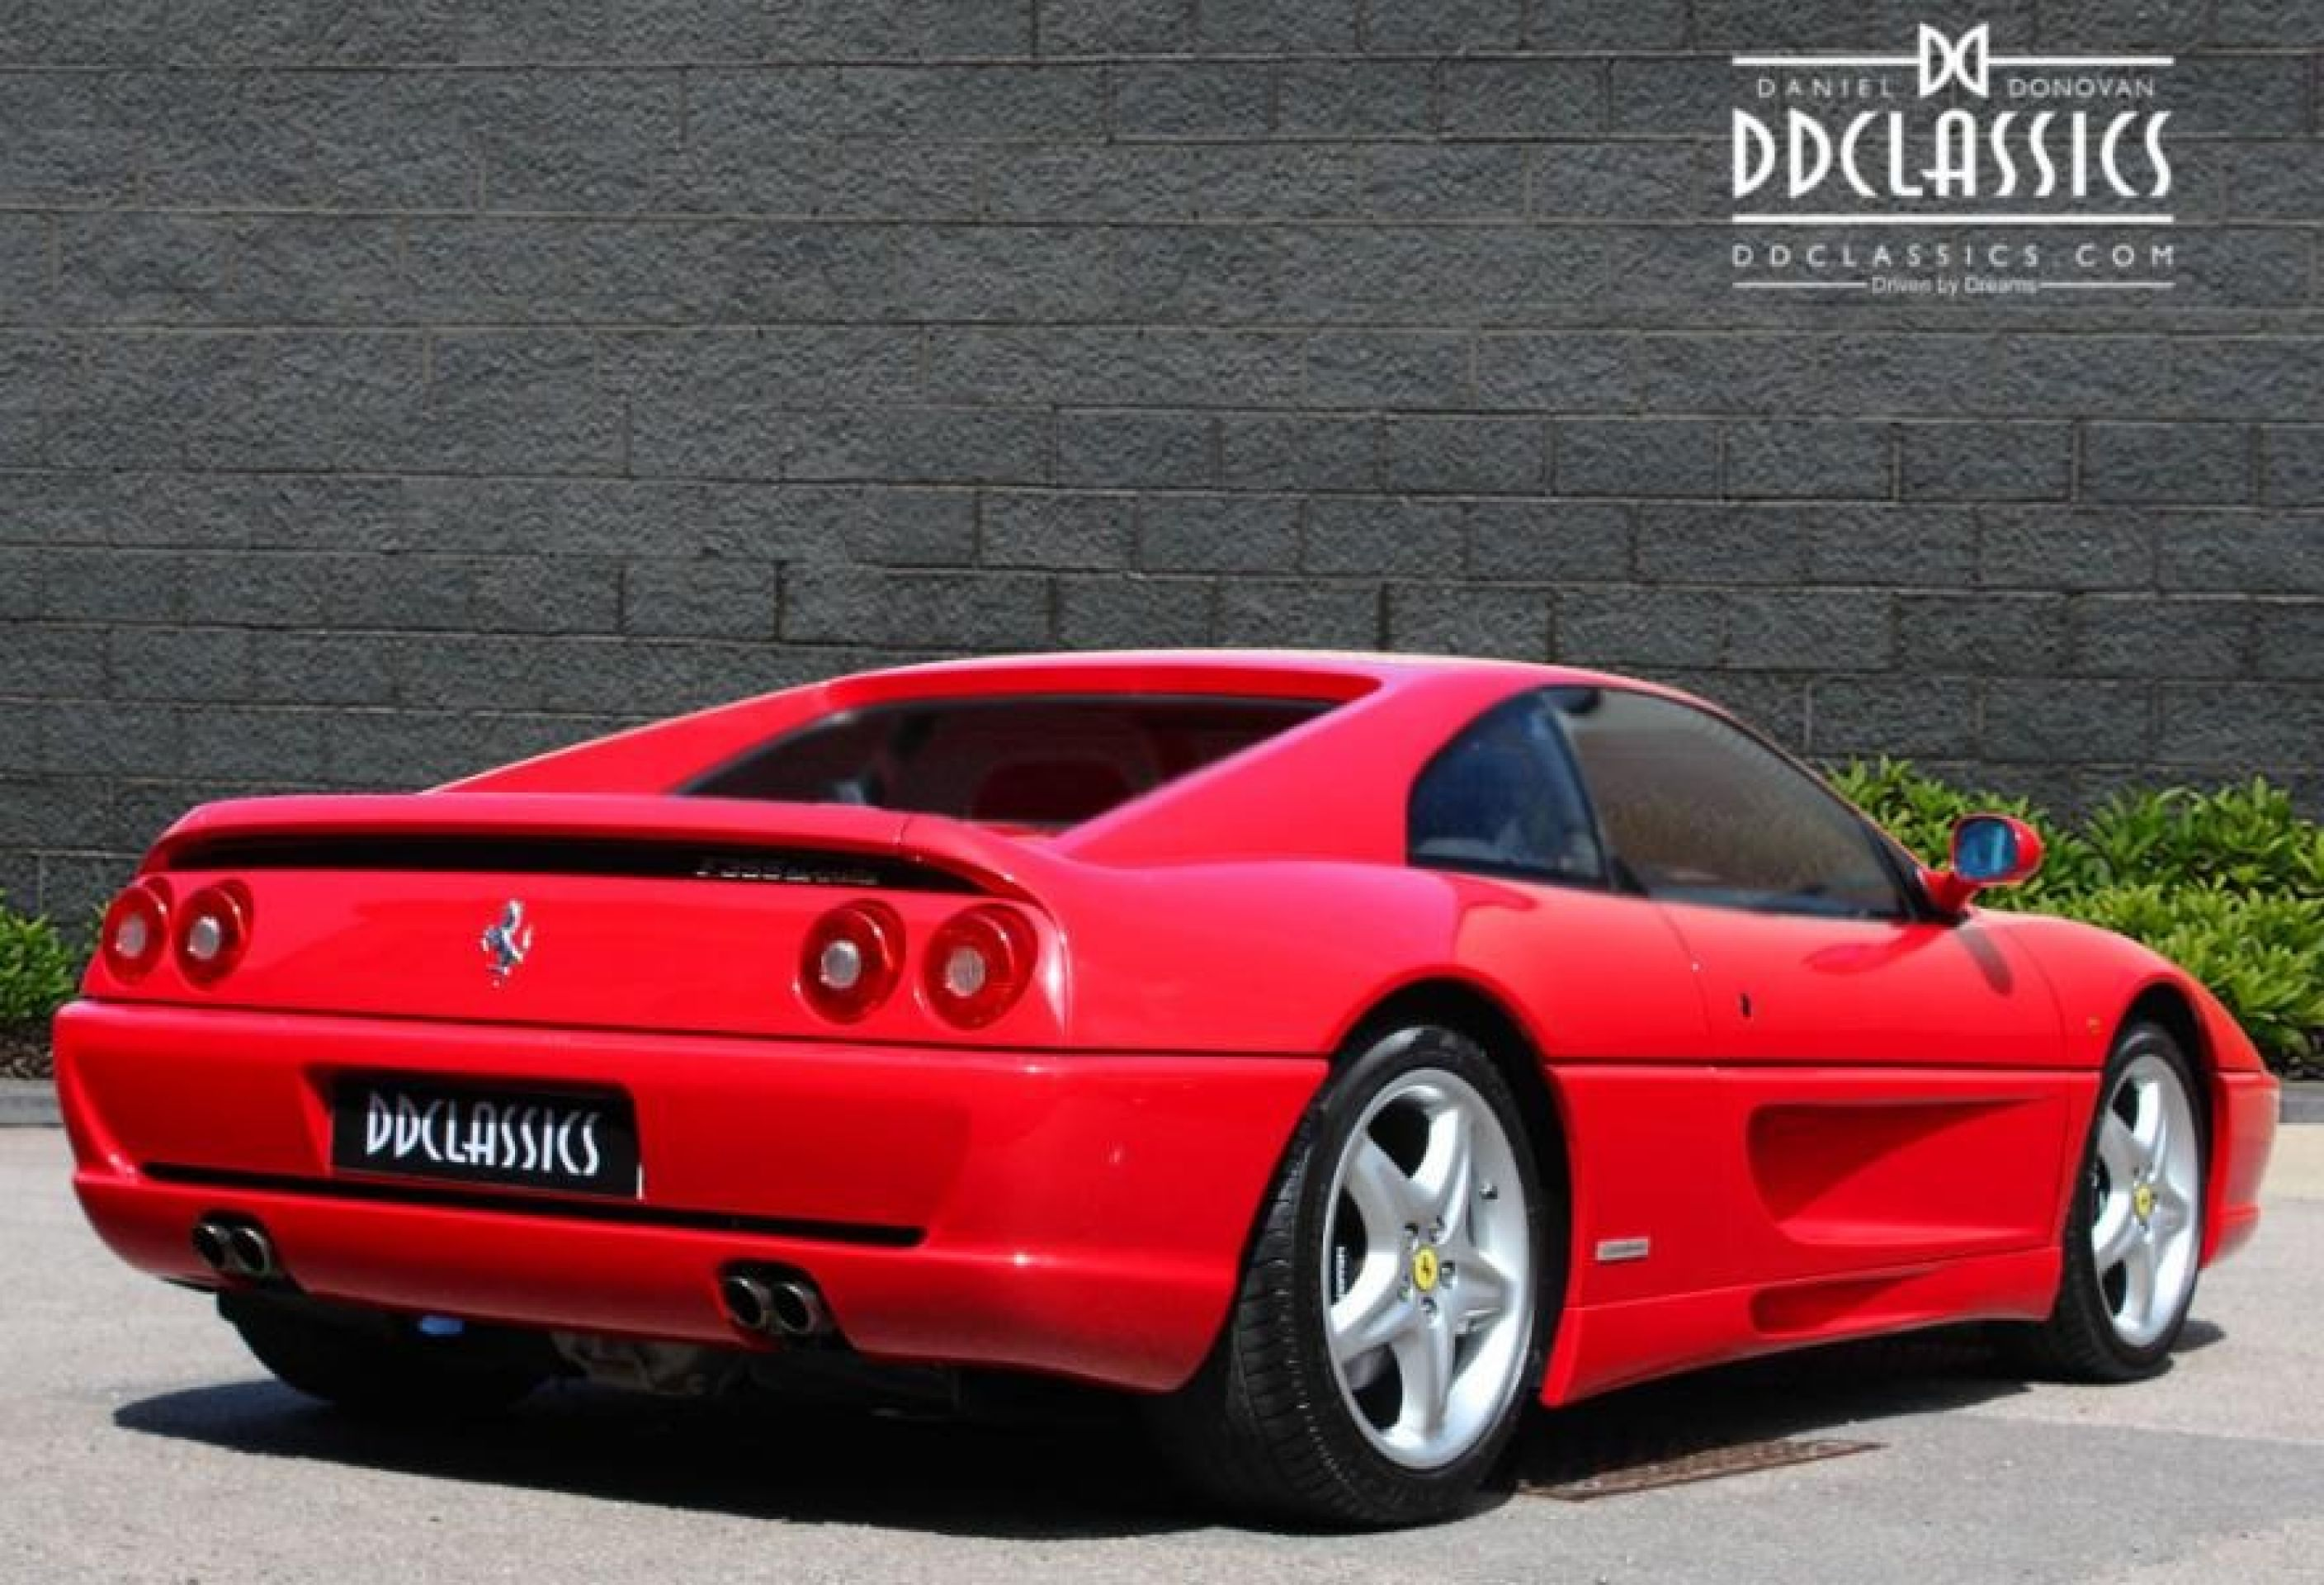 F355 GTB MANUAL 2.7 MOTRONIC NON AIRBAG